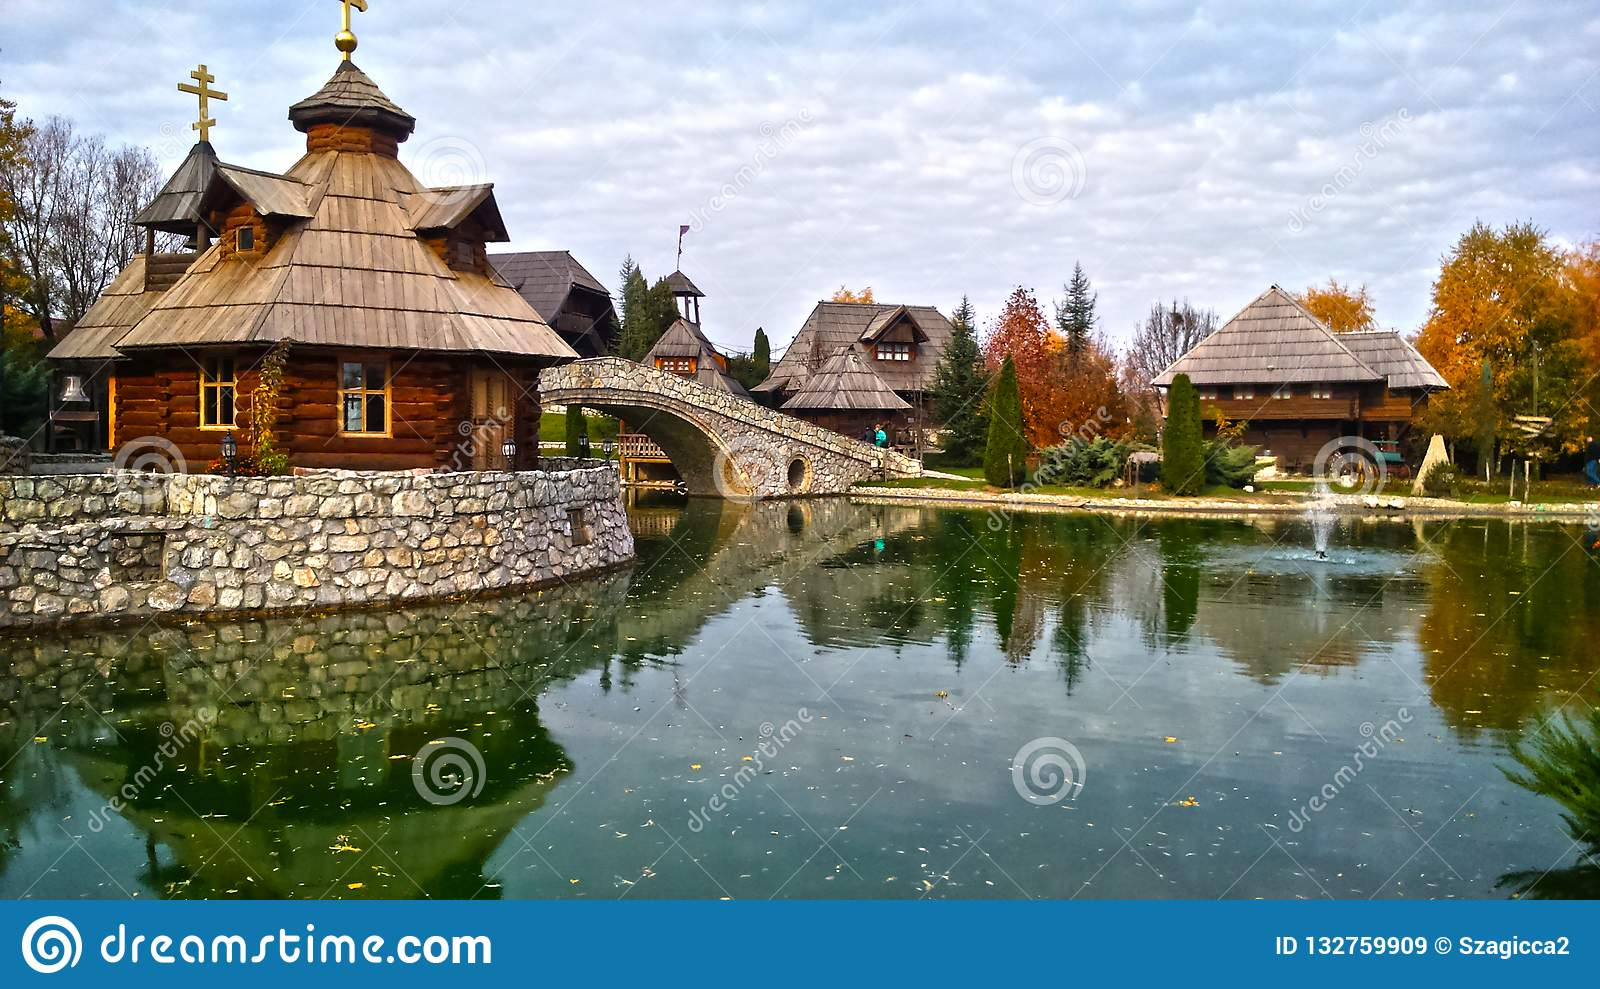 Ethno village Stanisici in Bosnia and Herzegovina,on the Pavloviceva road, autumn season